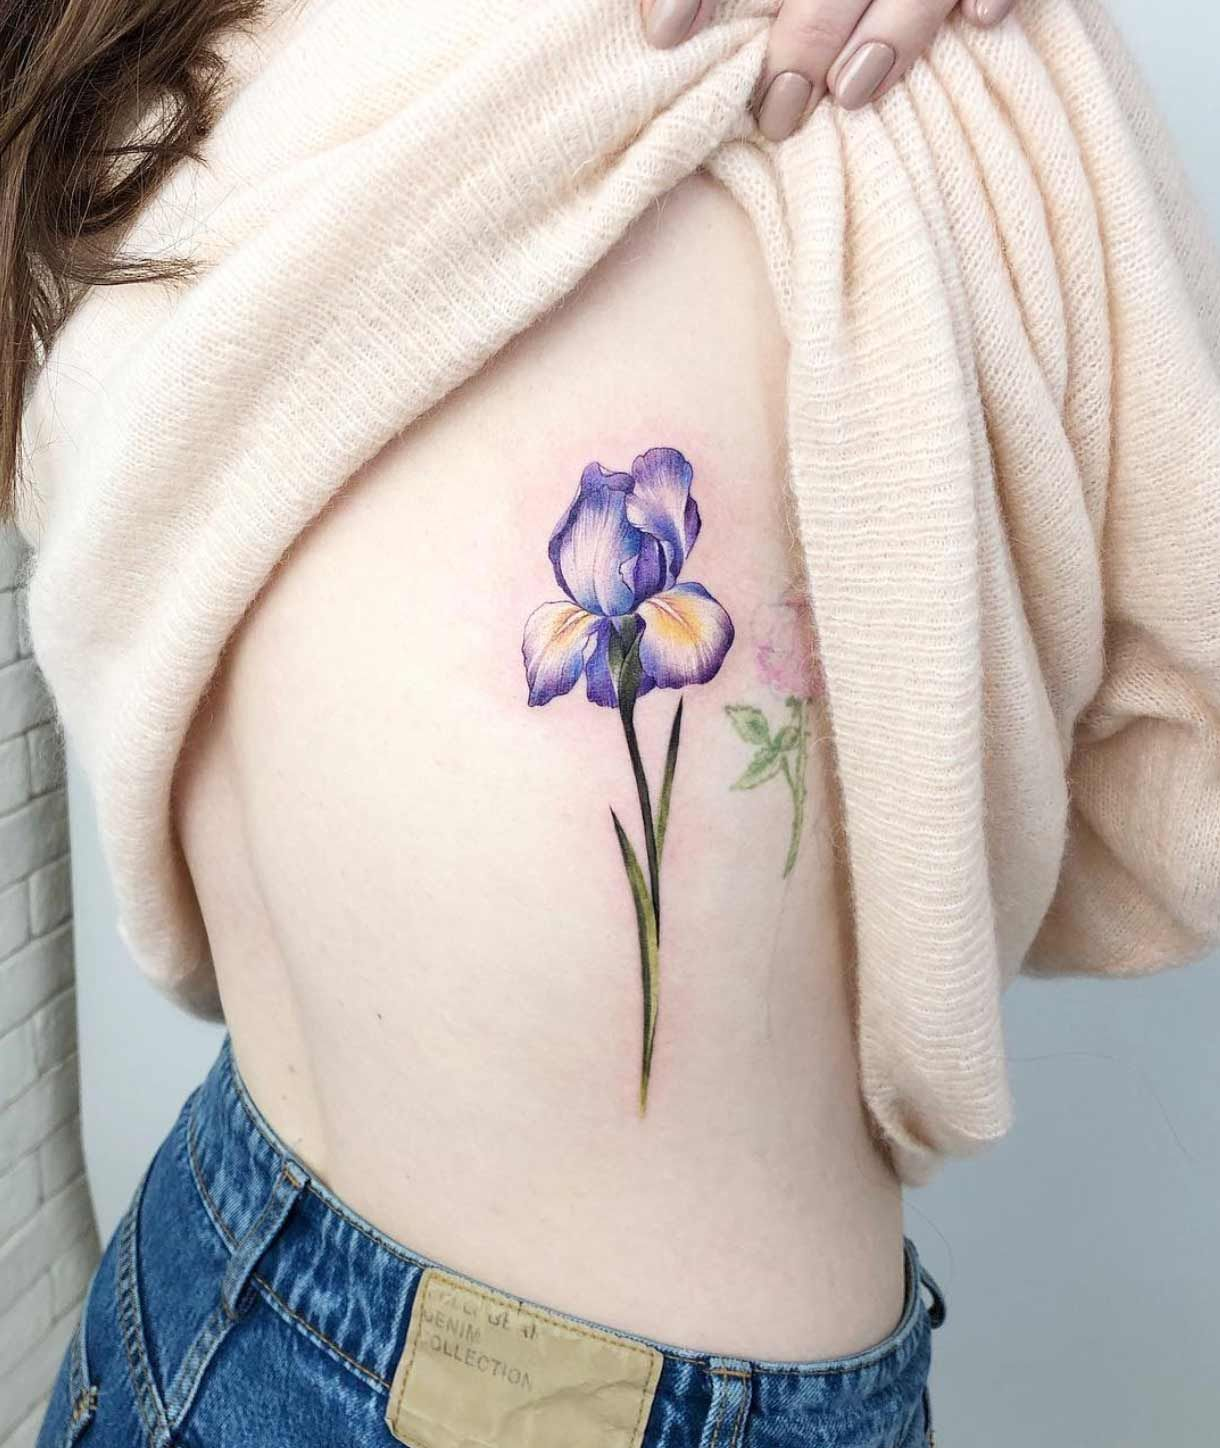 50 Gorgeous Tattoo Designs You Ll Desperately Desire Tattooblend Gorgeous Tattoos Tattoo Designs Iris Flower Tattoo